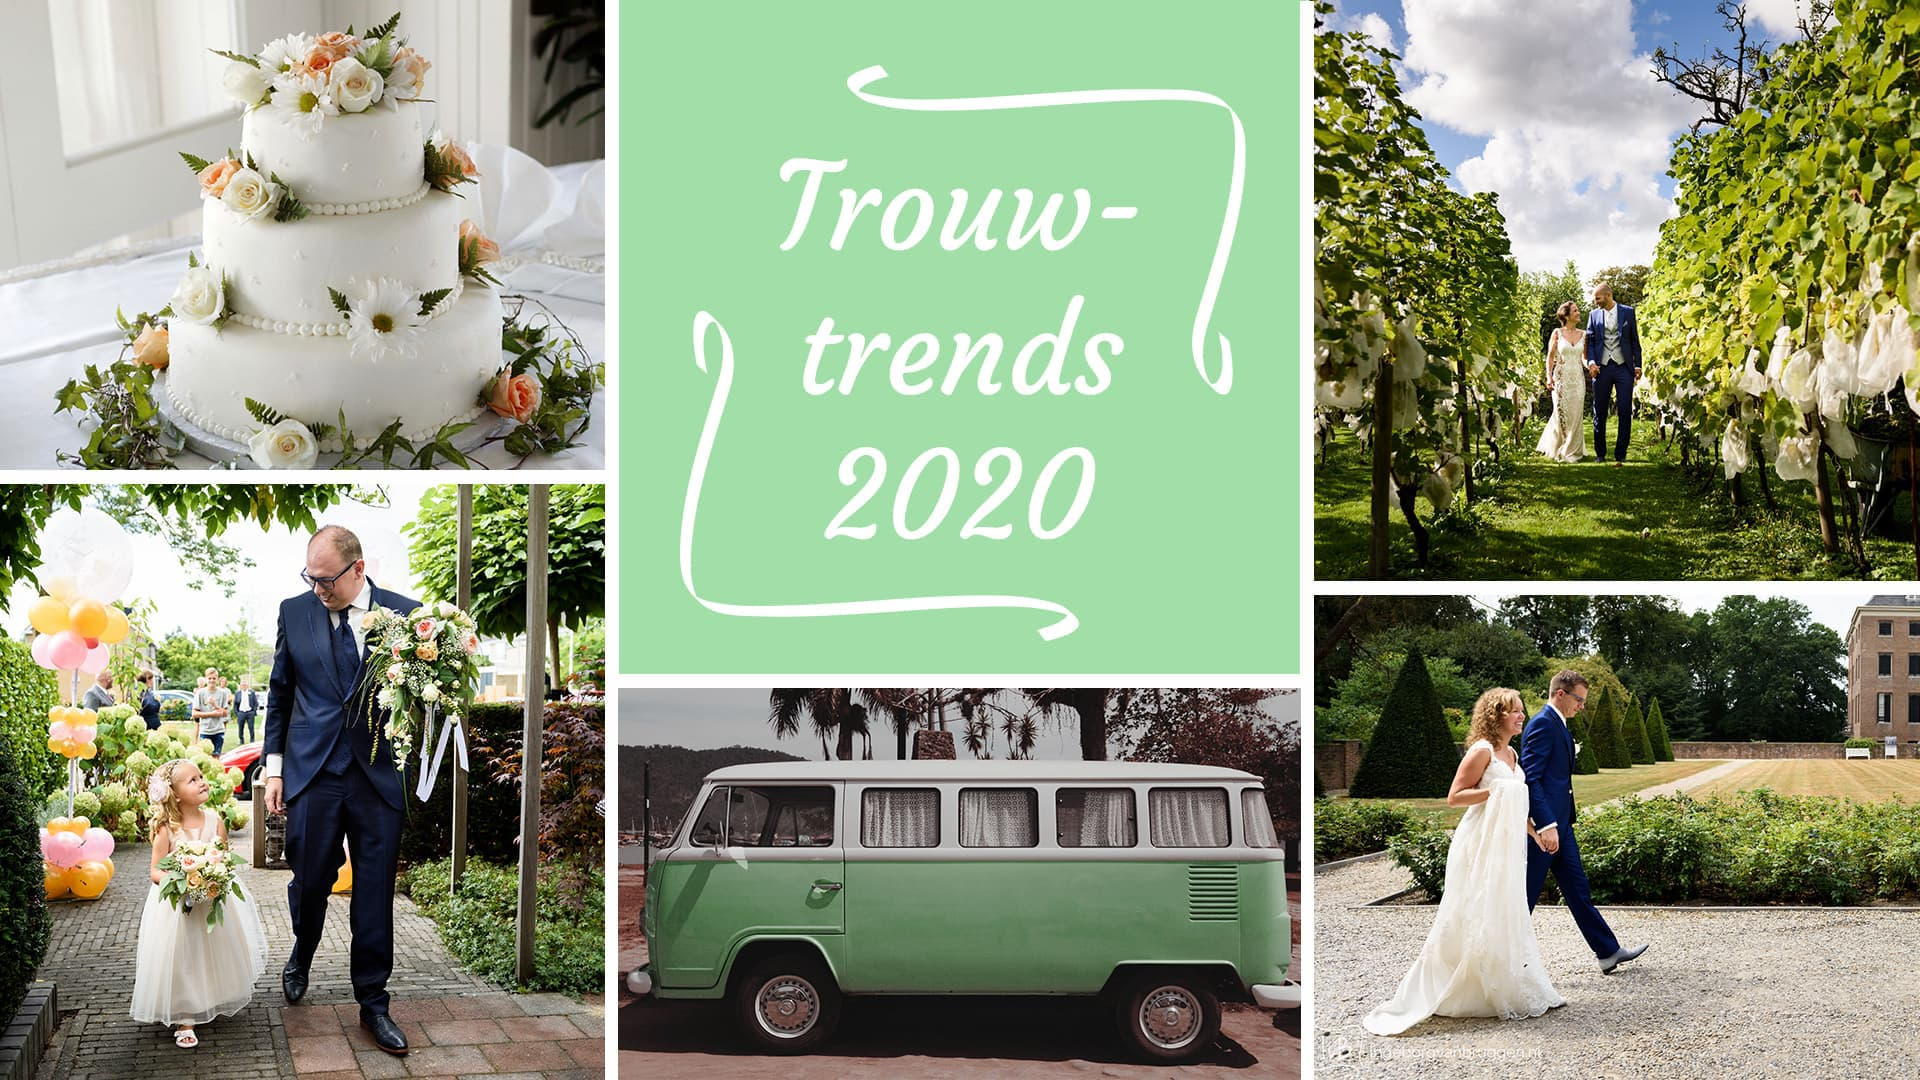 Trouwtrends collage 2020